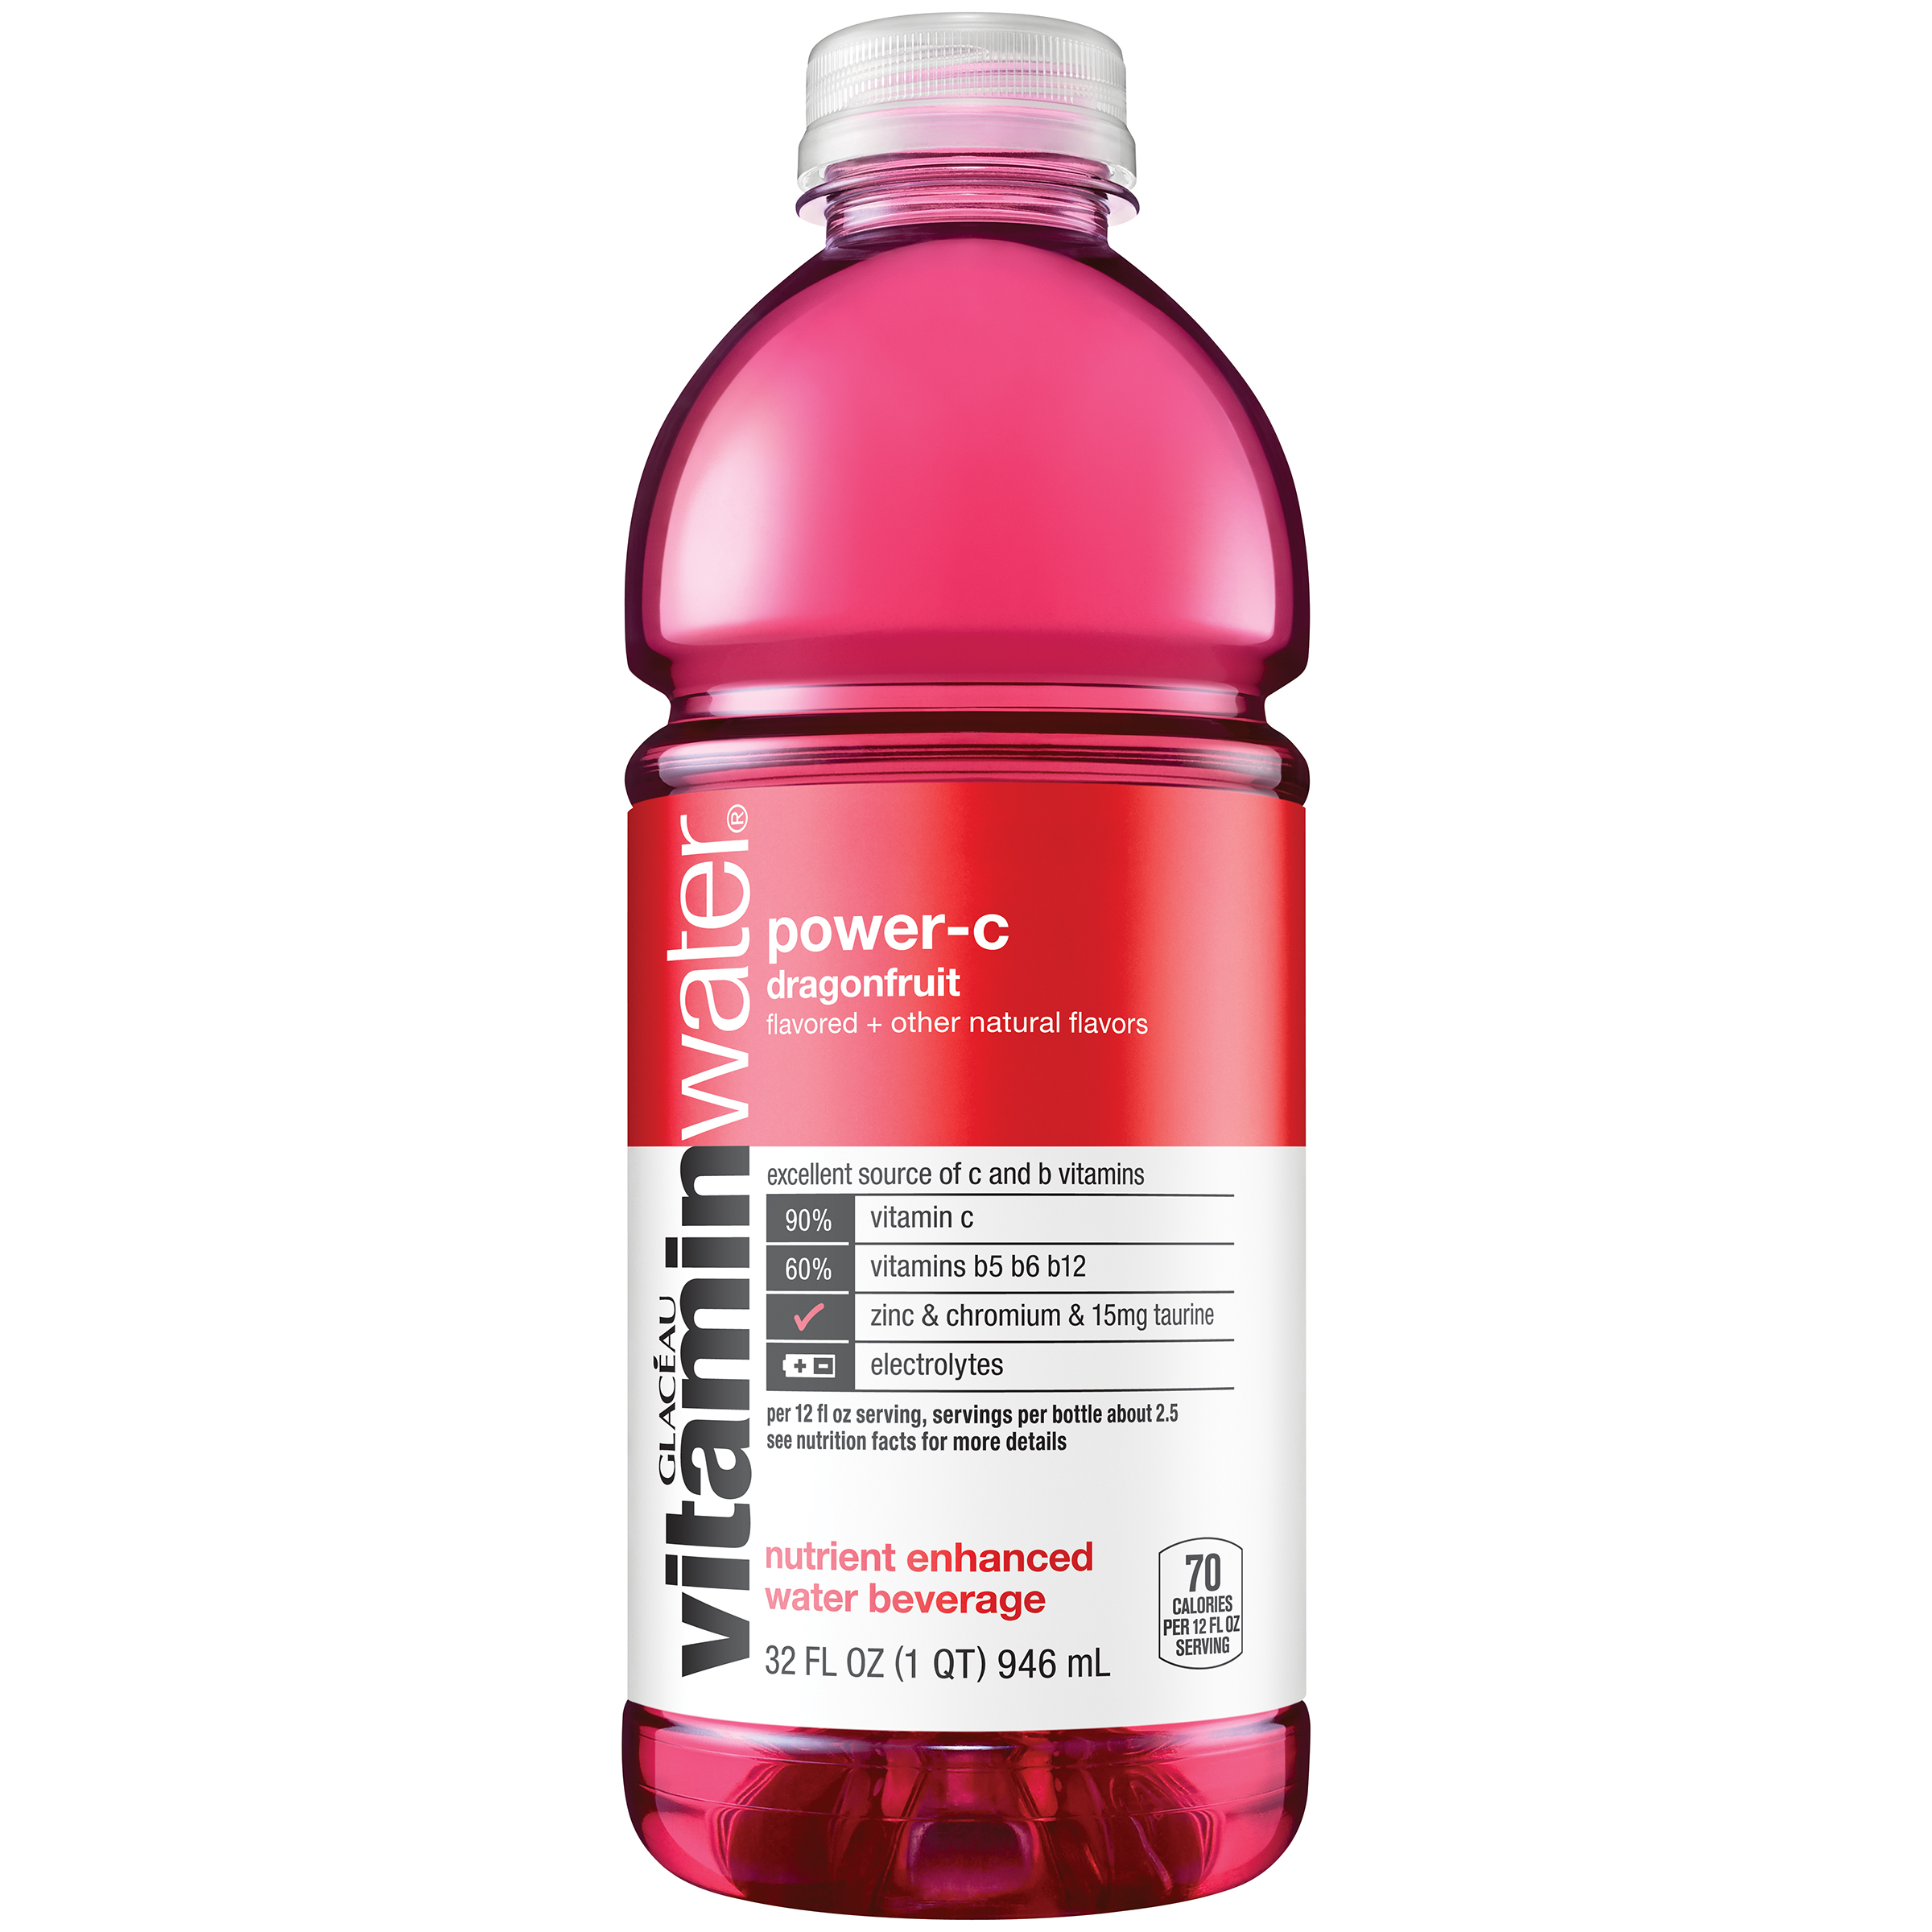 vitaminwater power-c, Dragonfruit, 32 fl oz